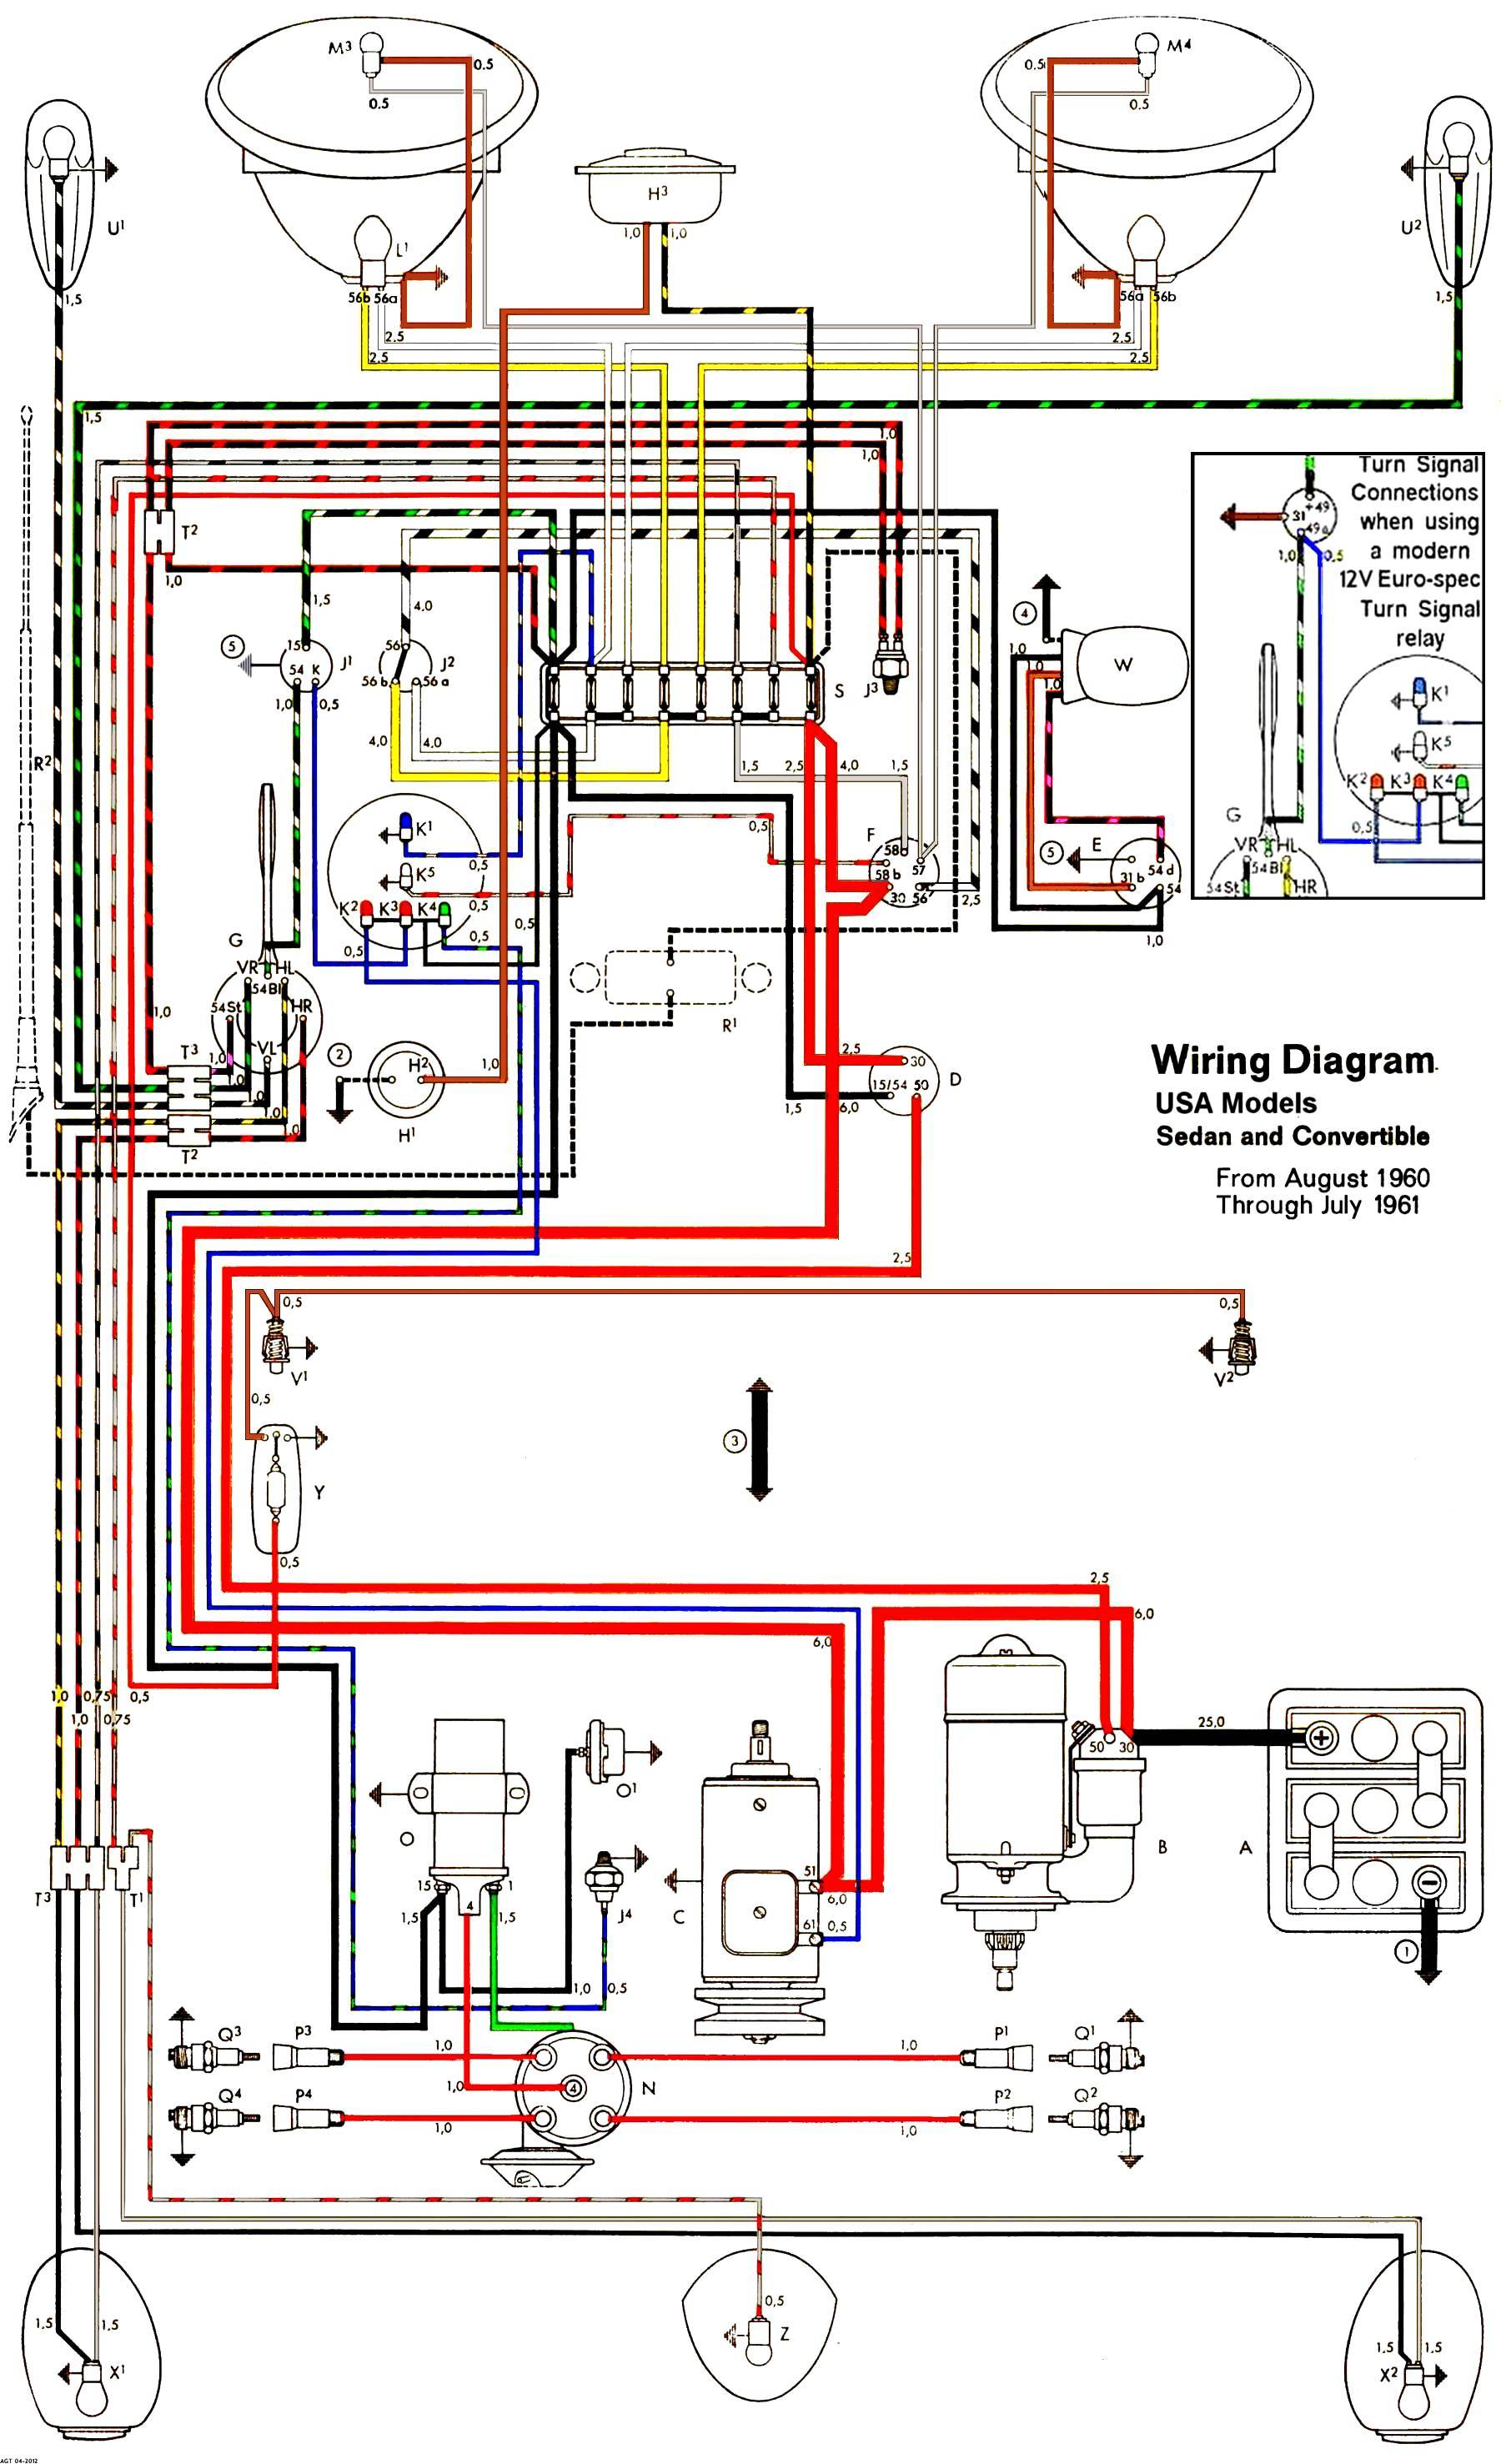 68 camaro brake light wiring diagram  | 620 x 530